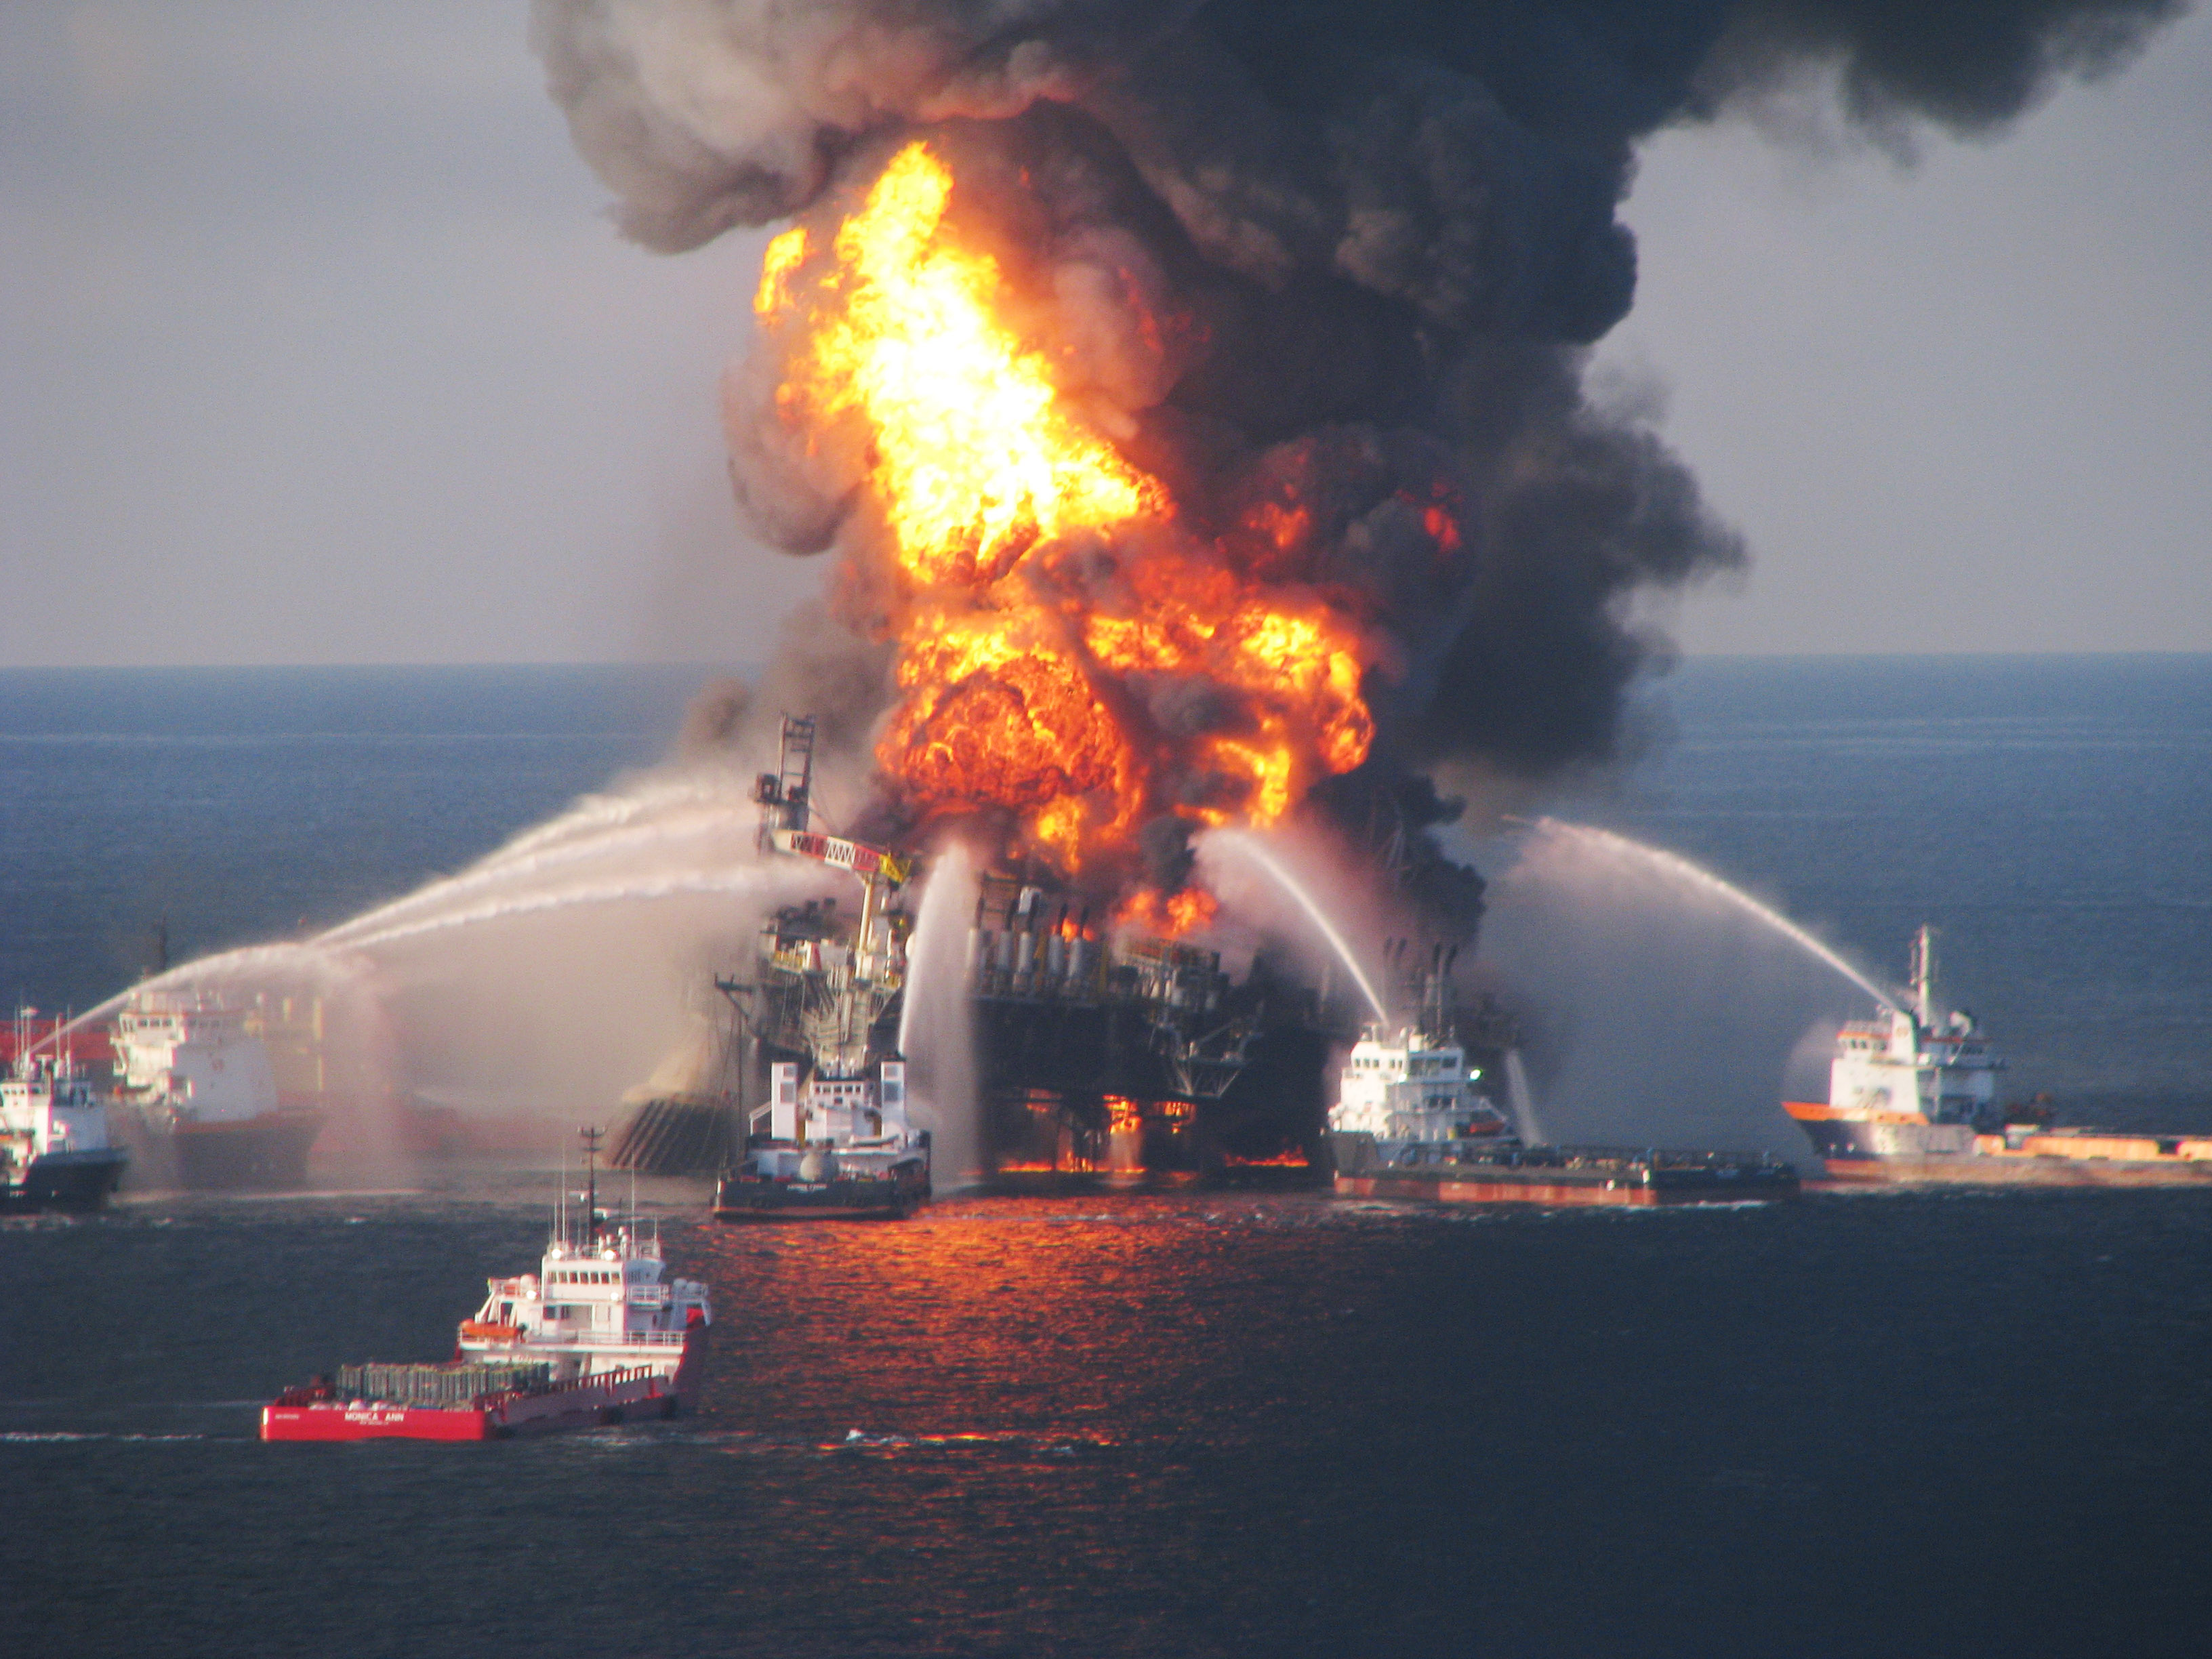 GULF OF MEXICO - APRIL 21: Fire boats battle a fire at the off shore oil rig Deepwater Horizon April 21, 2010 in the Gulf of Mexico off the coast of Louisiana. Multiple Coast Guard helicopters, planes and cutters responded to rescue the Deepwater Horizons 126 person crew after an explosion and fire caused the crew to evacuate. (Photo by U.S. Coast Guard via Getty Images)